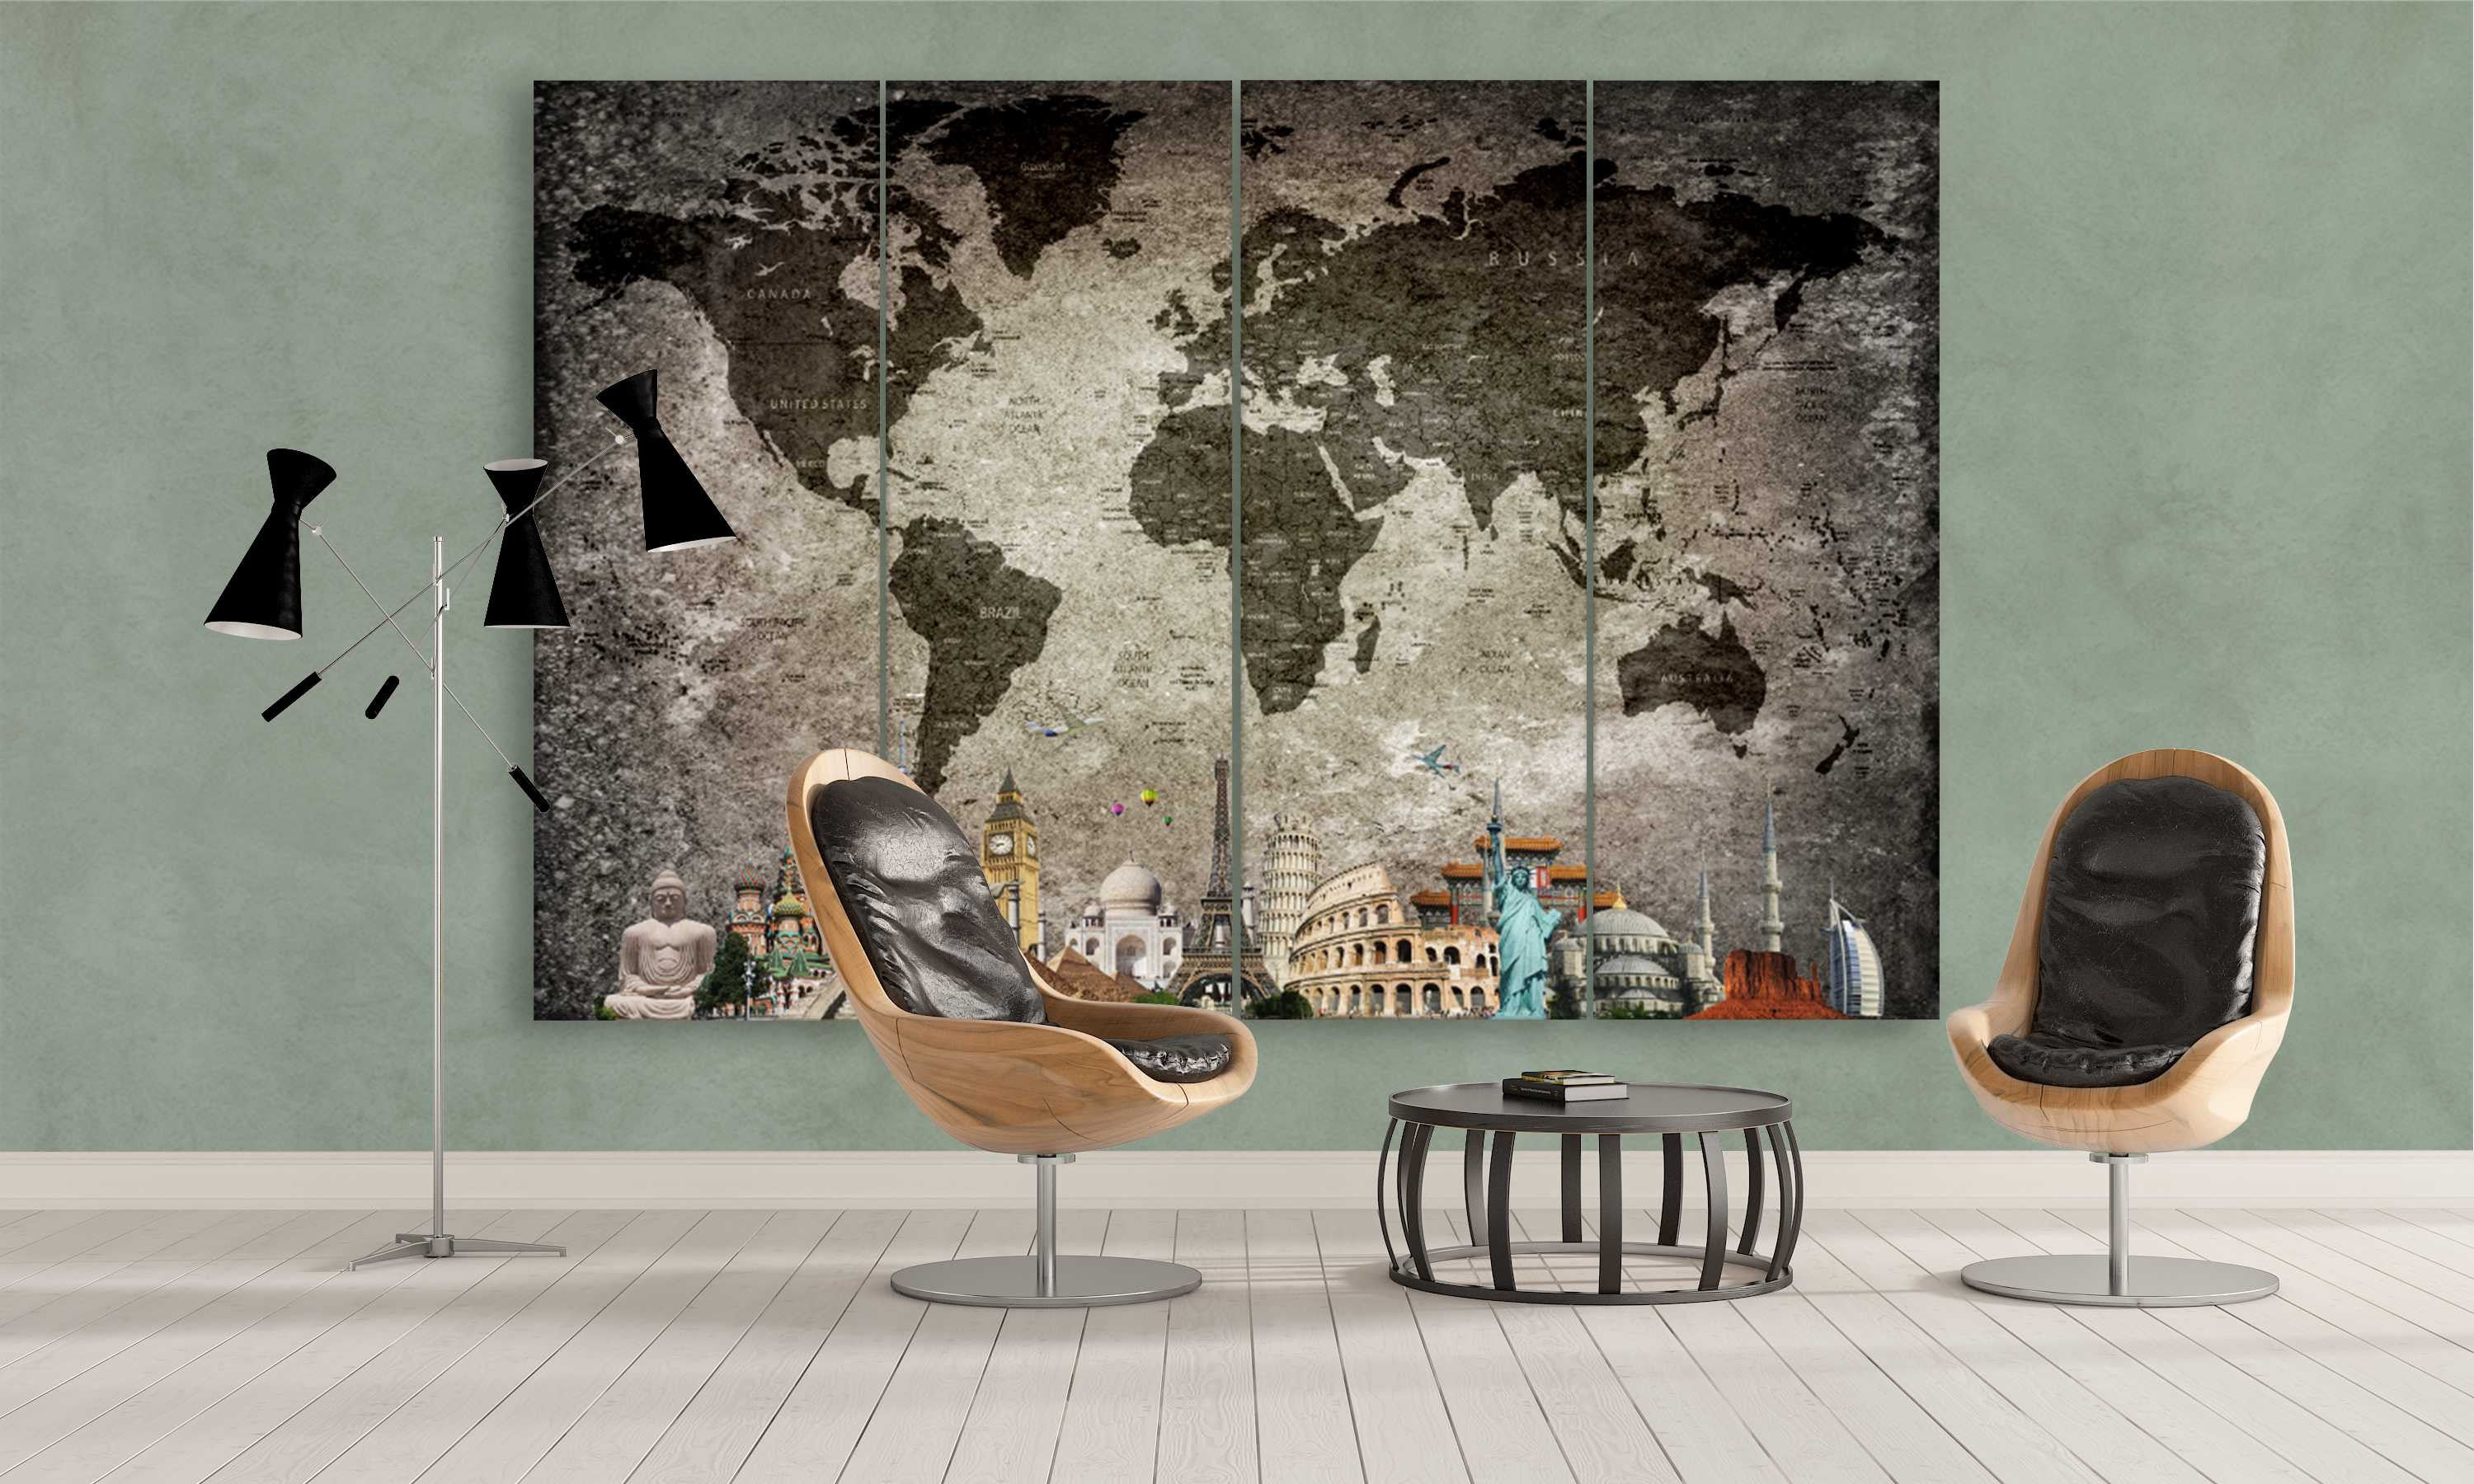 4 reasons why world map canvas is a must have decor panel wall art 4 reasons explain why world map canvas wall art is a must have decoration gumiabroncs Image collections